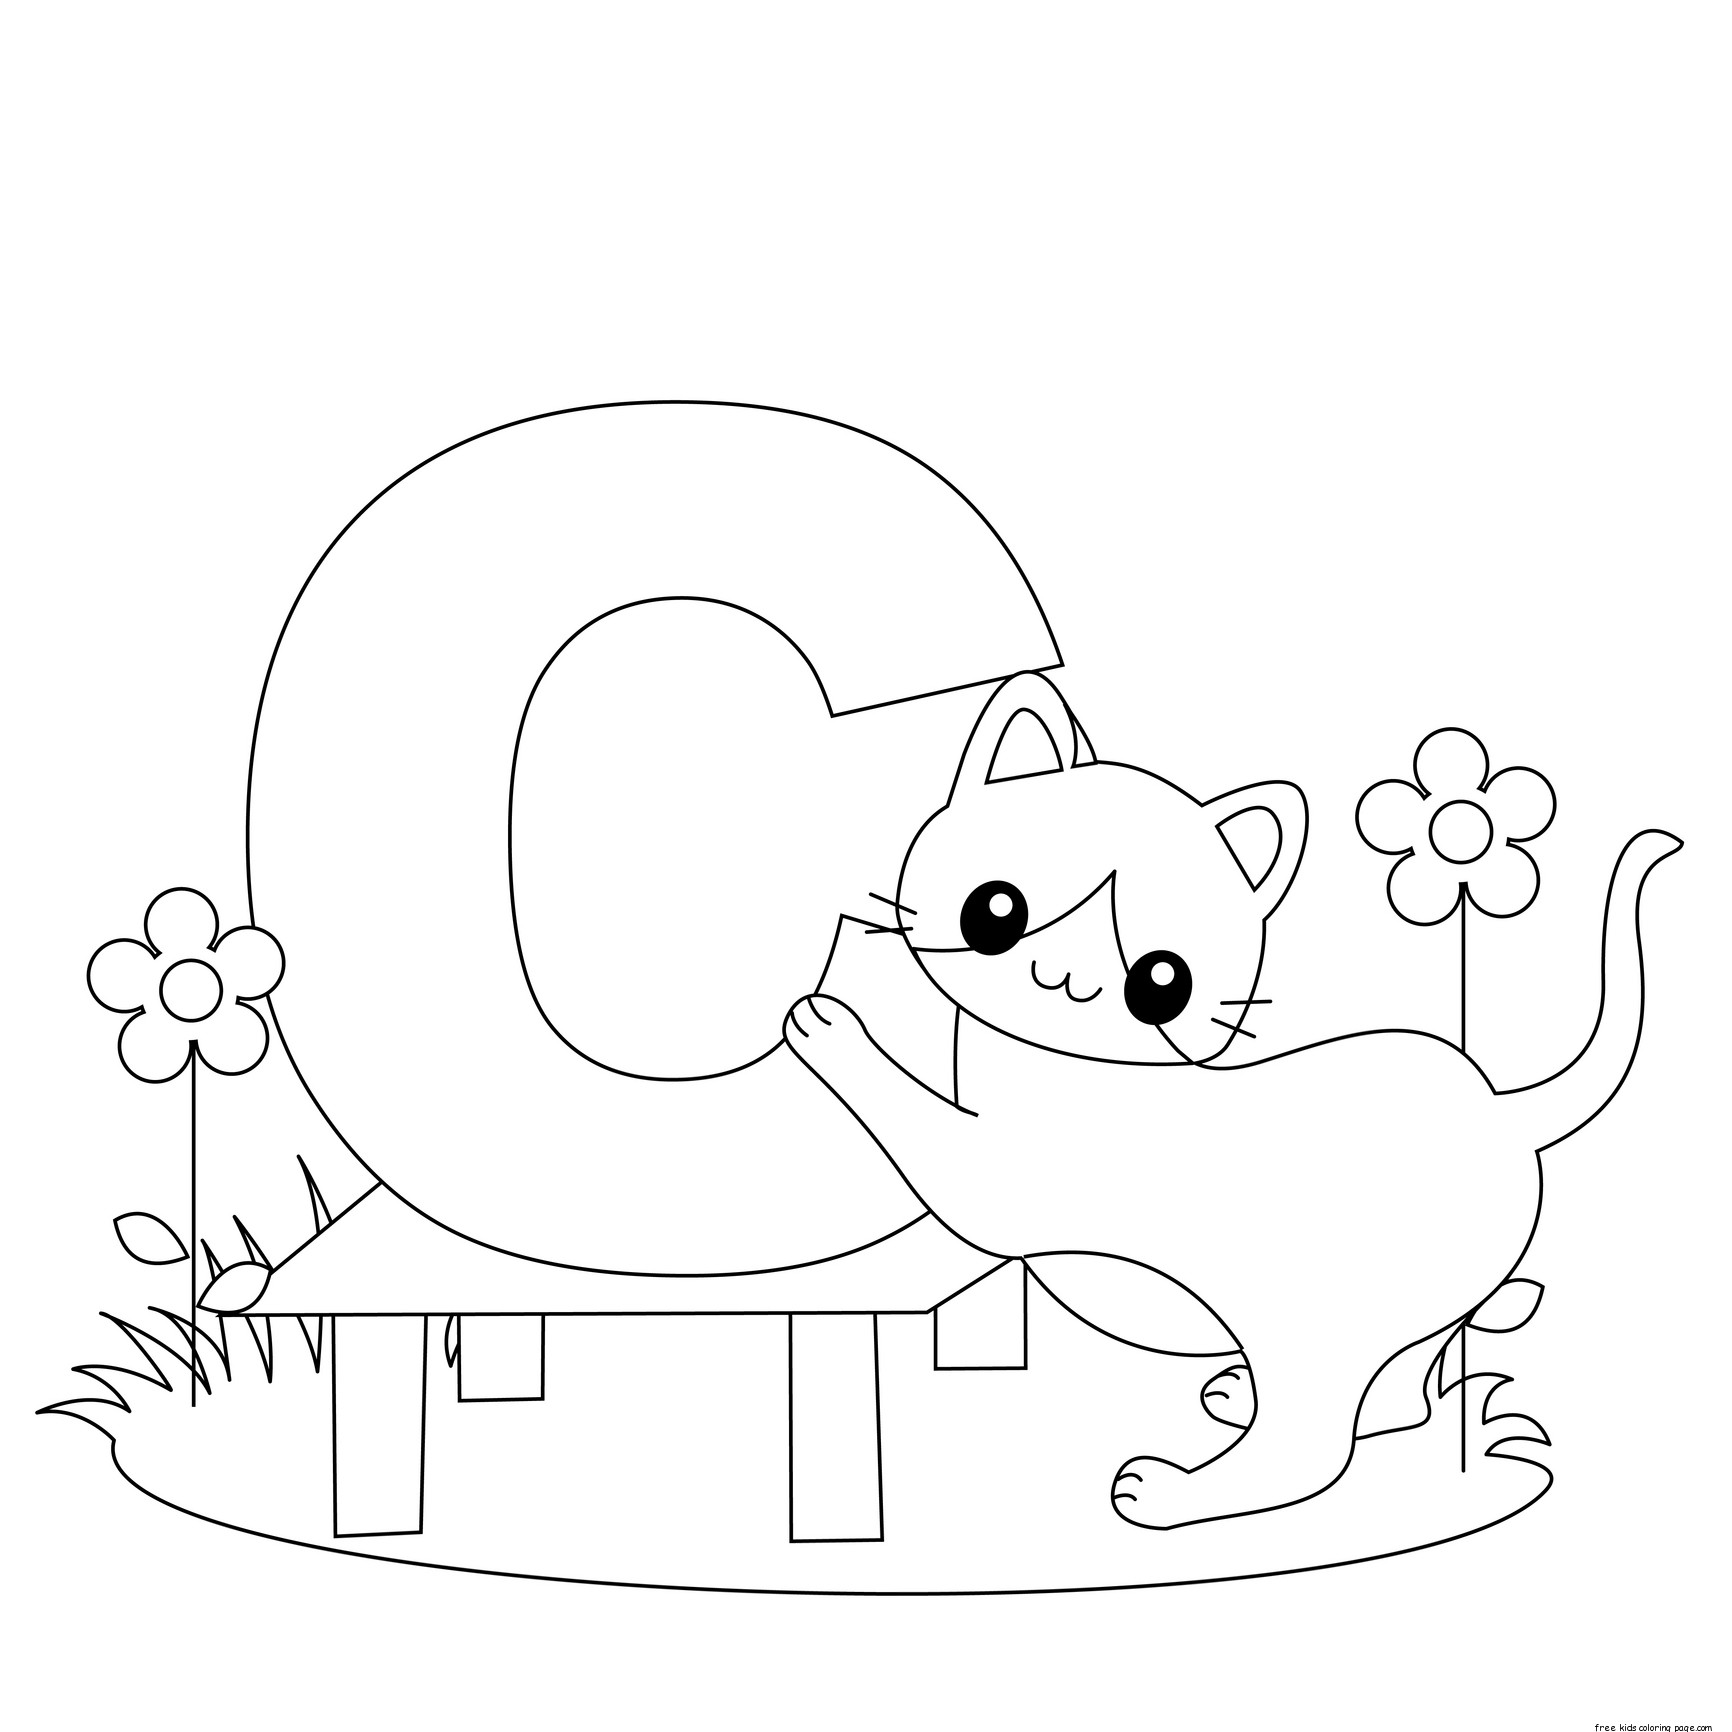 letter c coloring pages printable letter c is for clown coloring page free printable letter printable pages coloring c